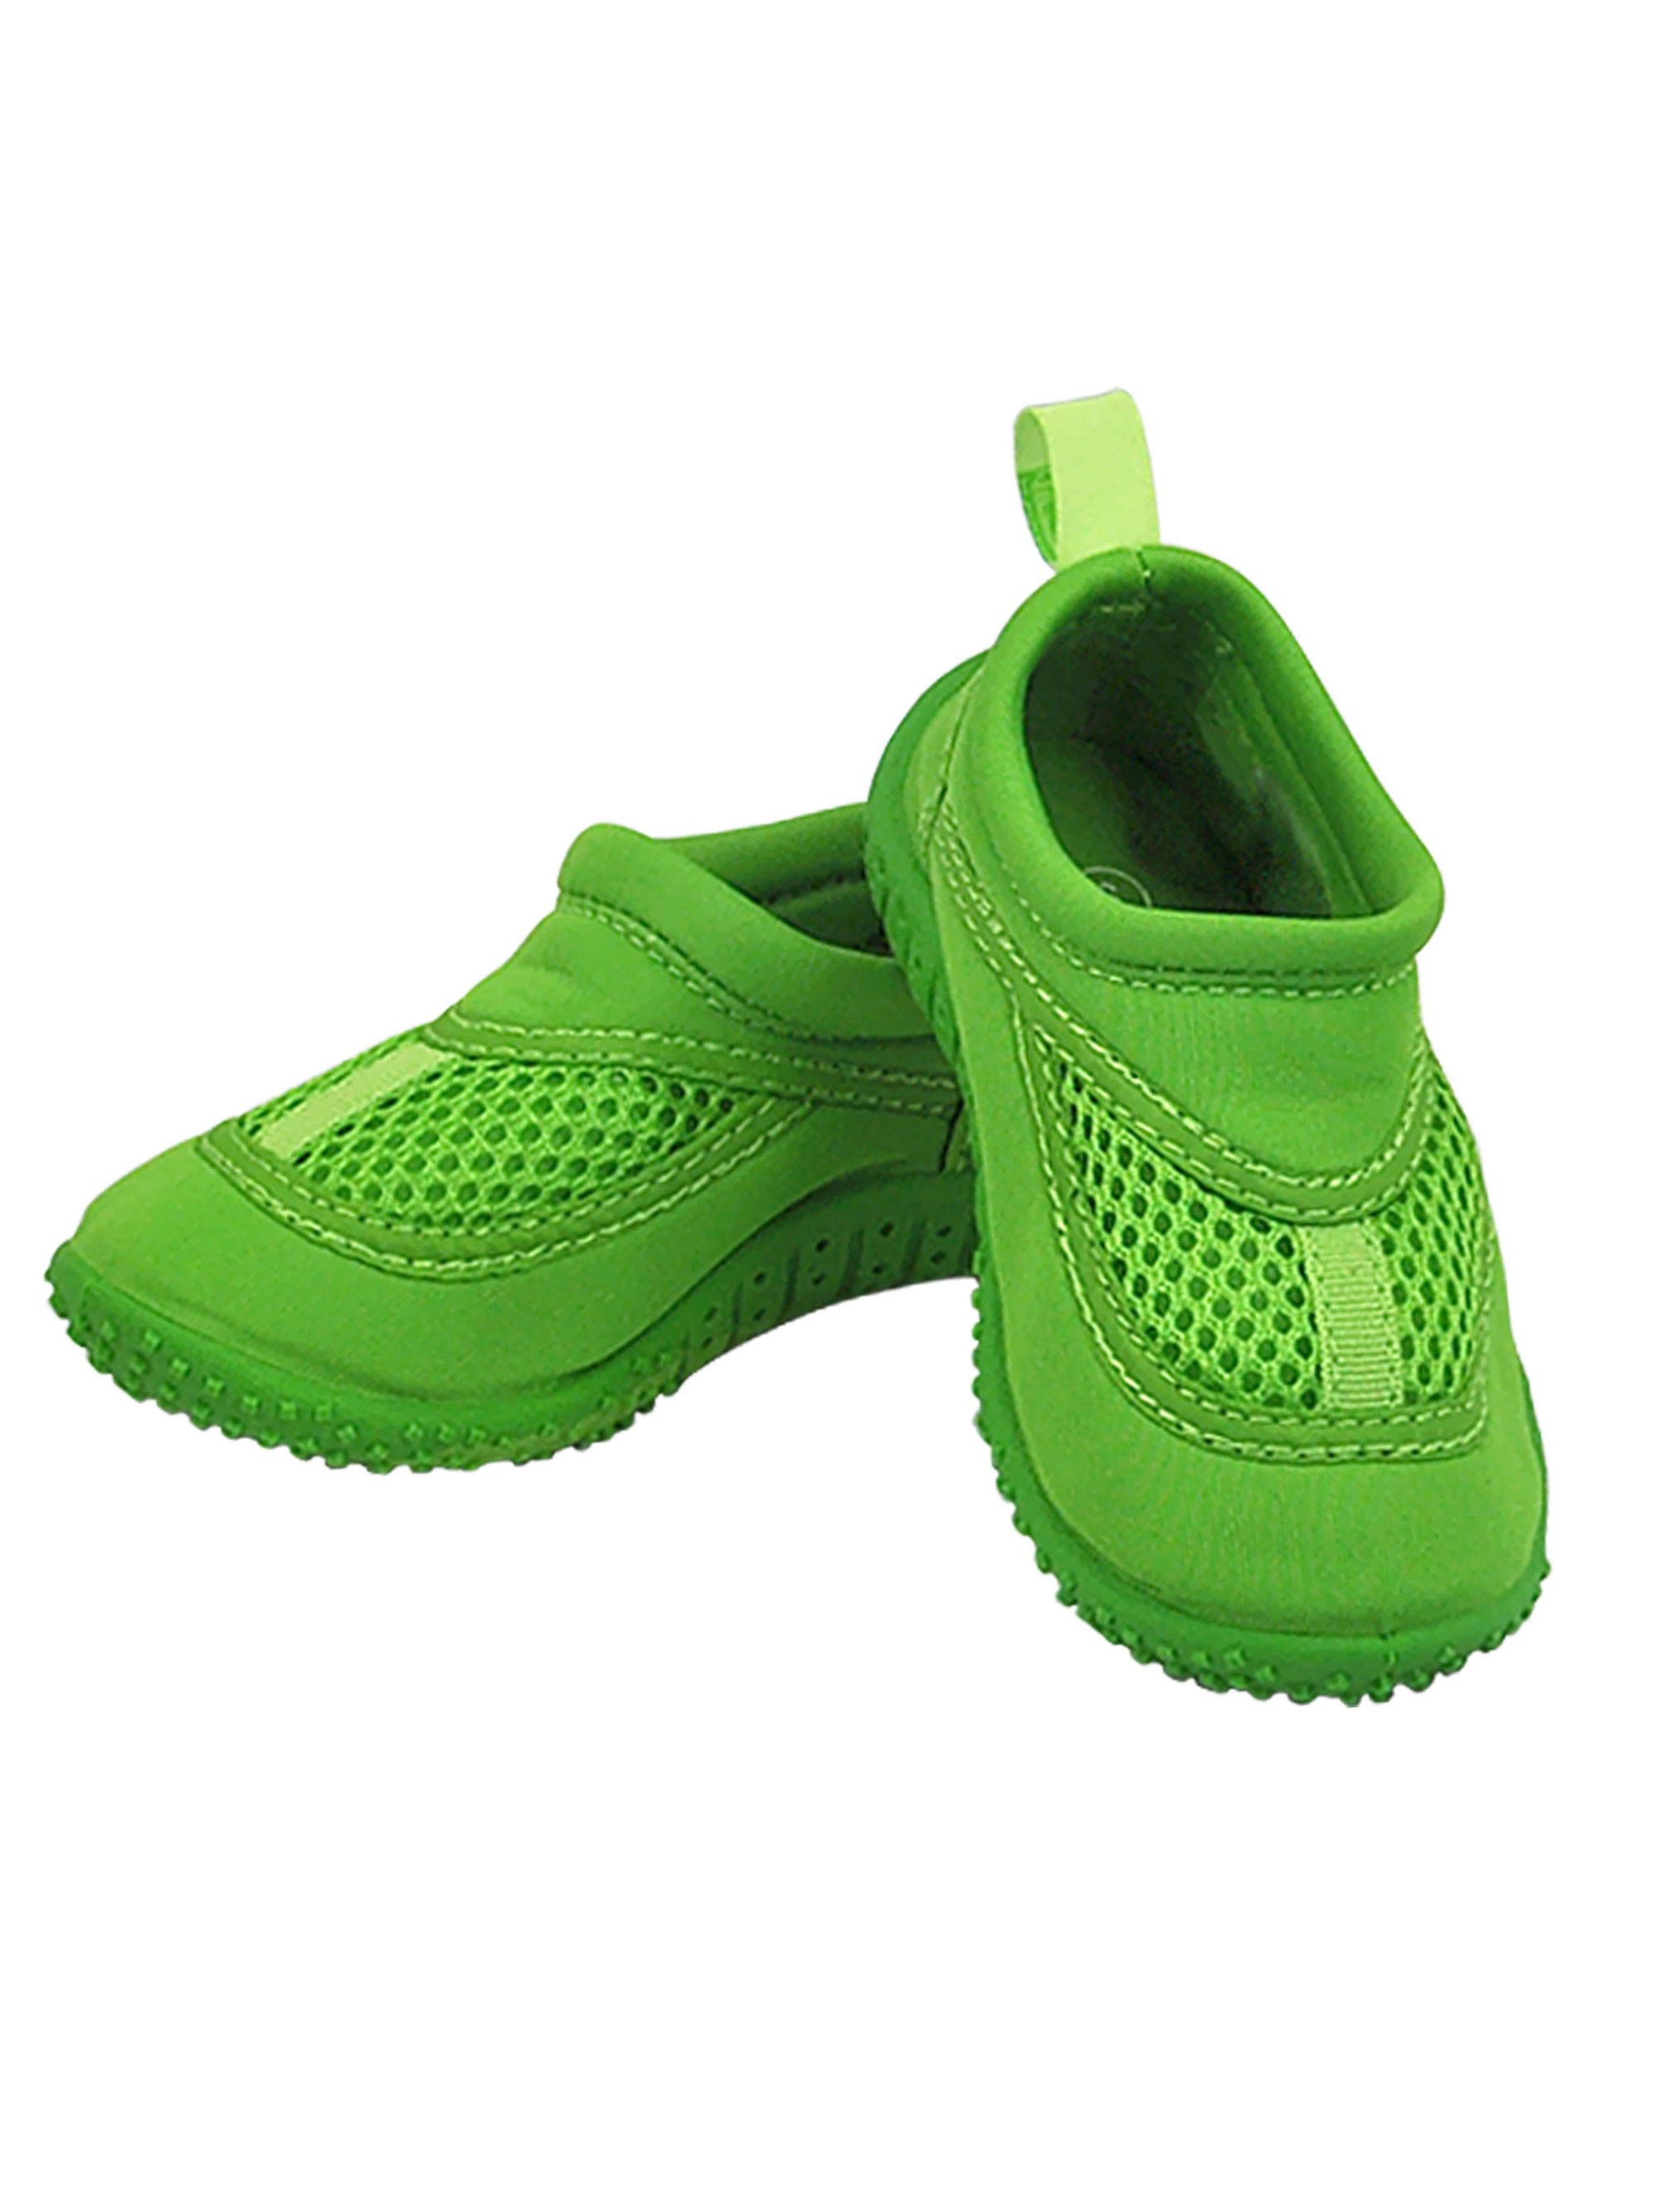 Iplay Unisex Boys or Girls Sand and Water Swim Shoes Kids Aqua Socks for Babies, Infants, Toddlers, and Children Lime... by iplay